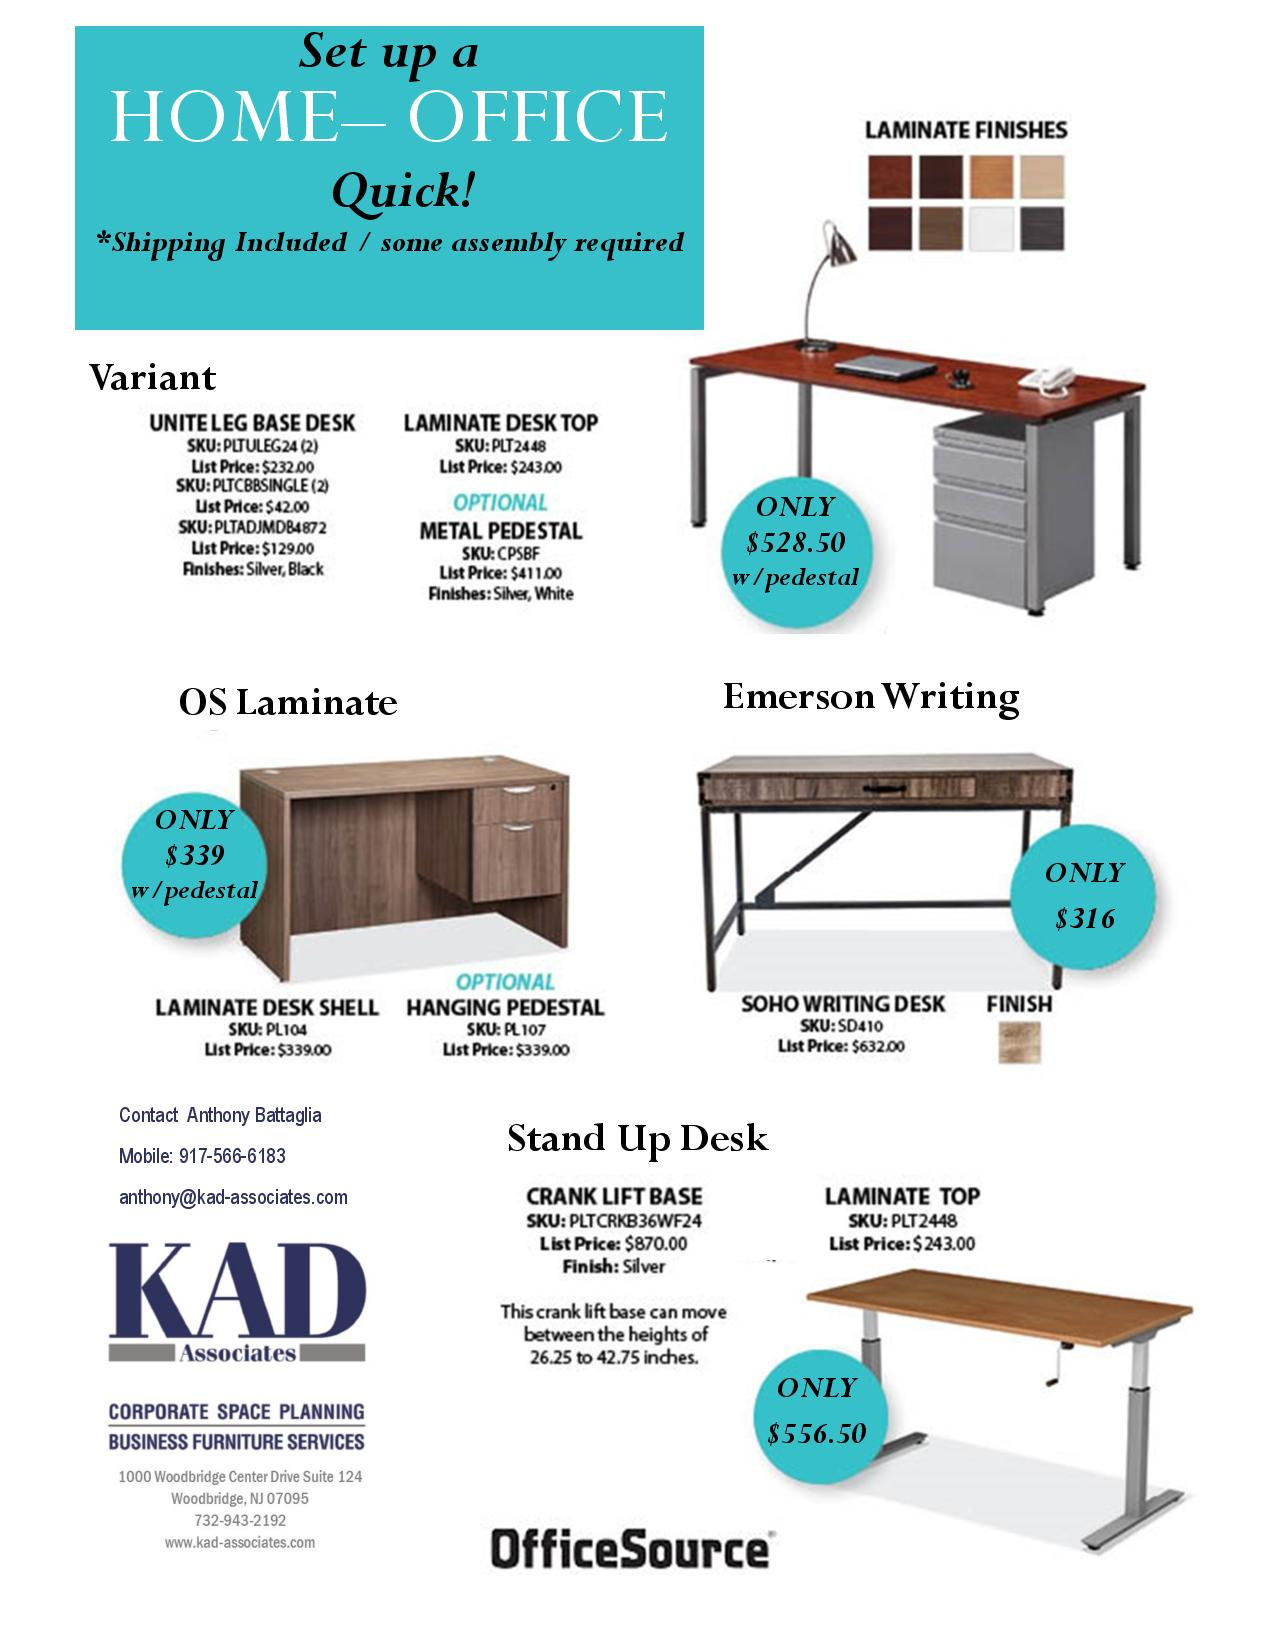 Discounts on Home Office Equipment!